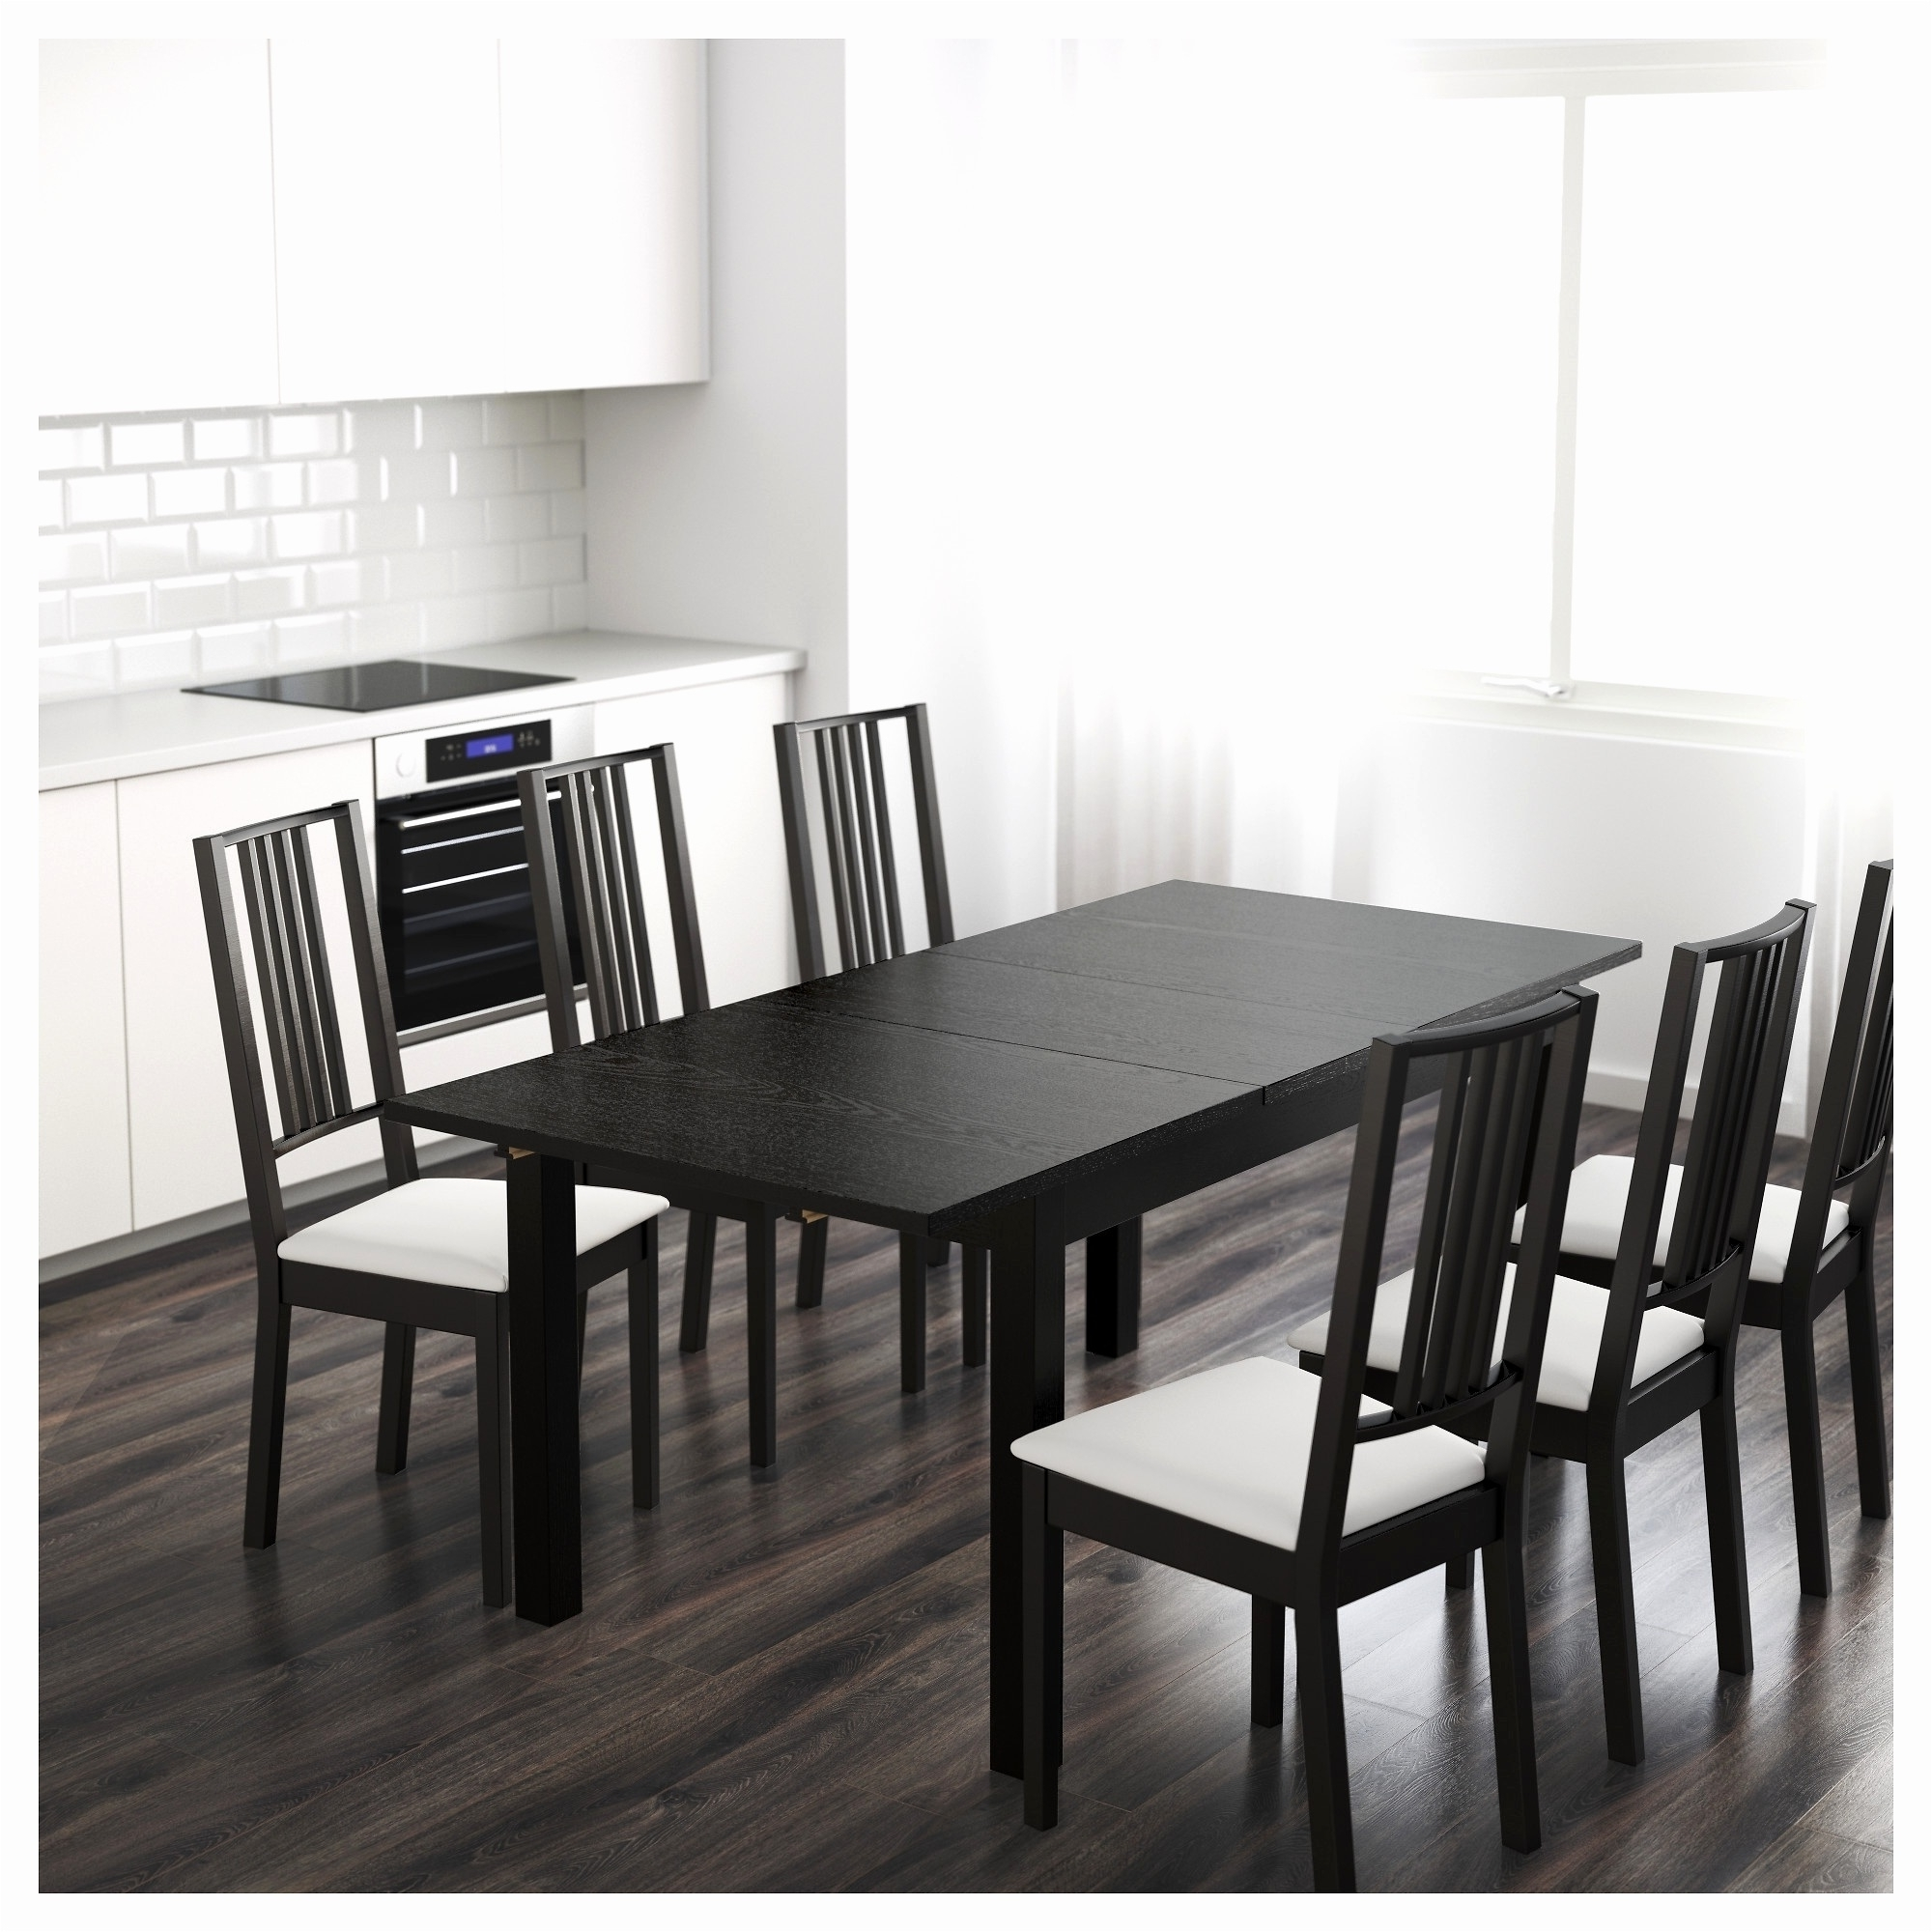 Newest Ikea Round Glass Top Dining Tables In Glass Sophia Round Dining Table Dining Set Tempered Glass Table With (View 4 of 25)